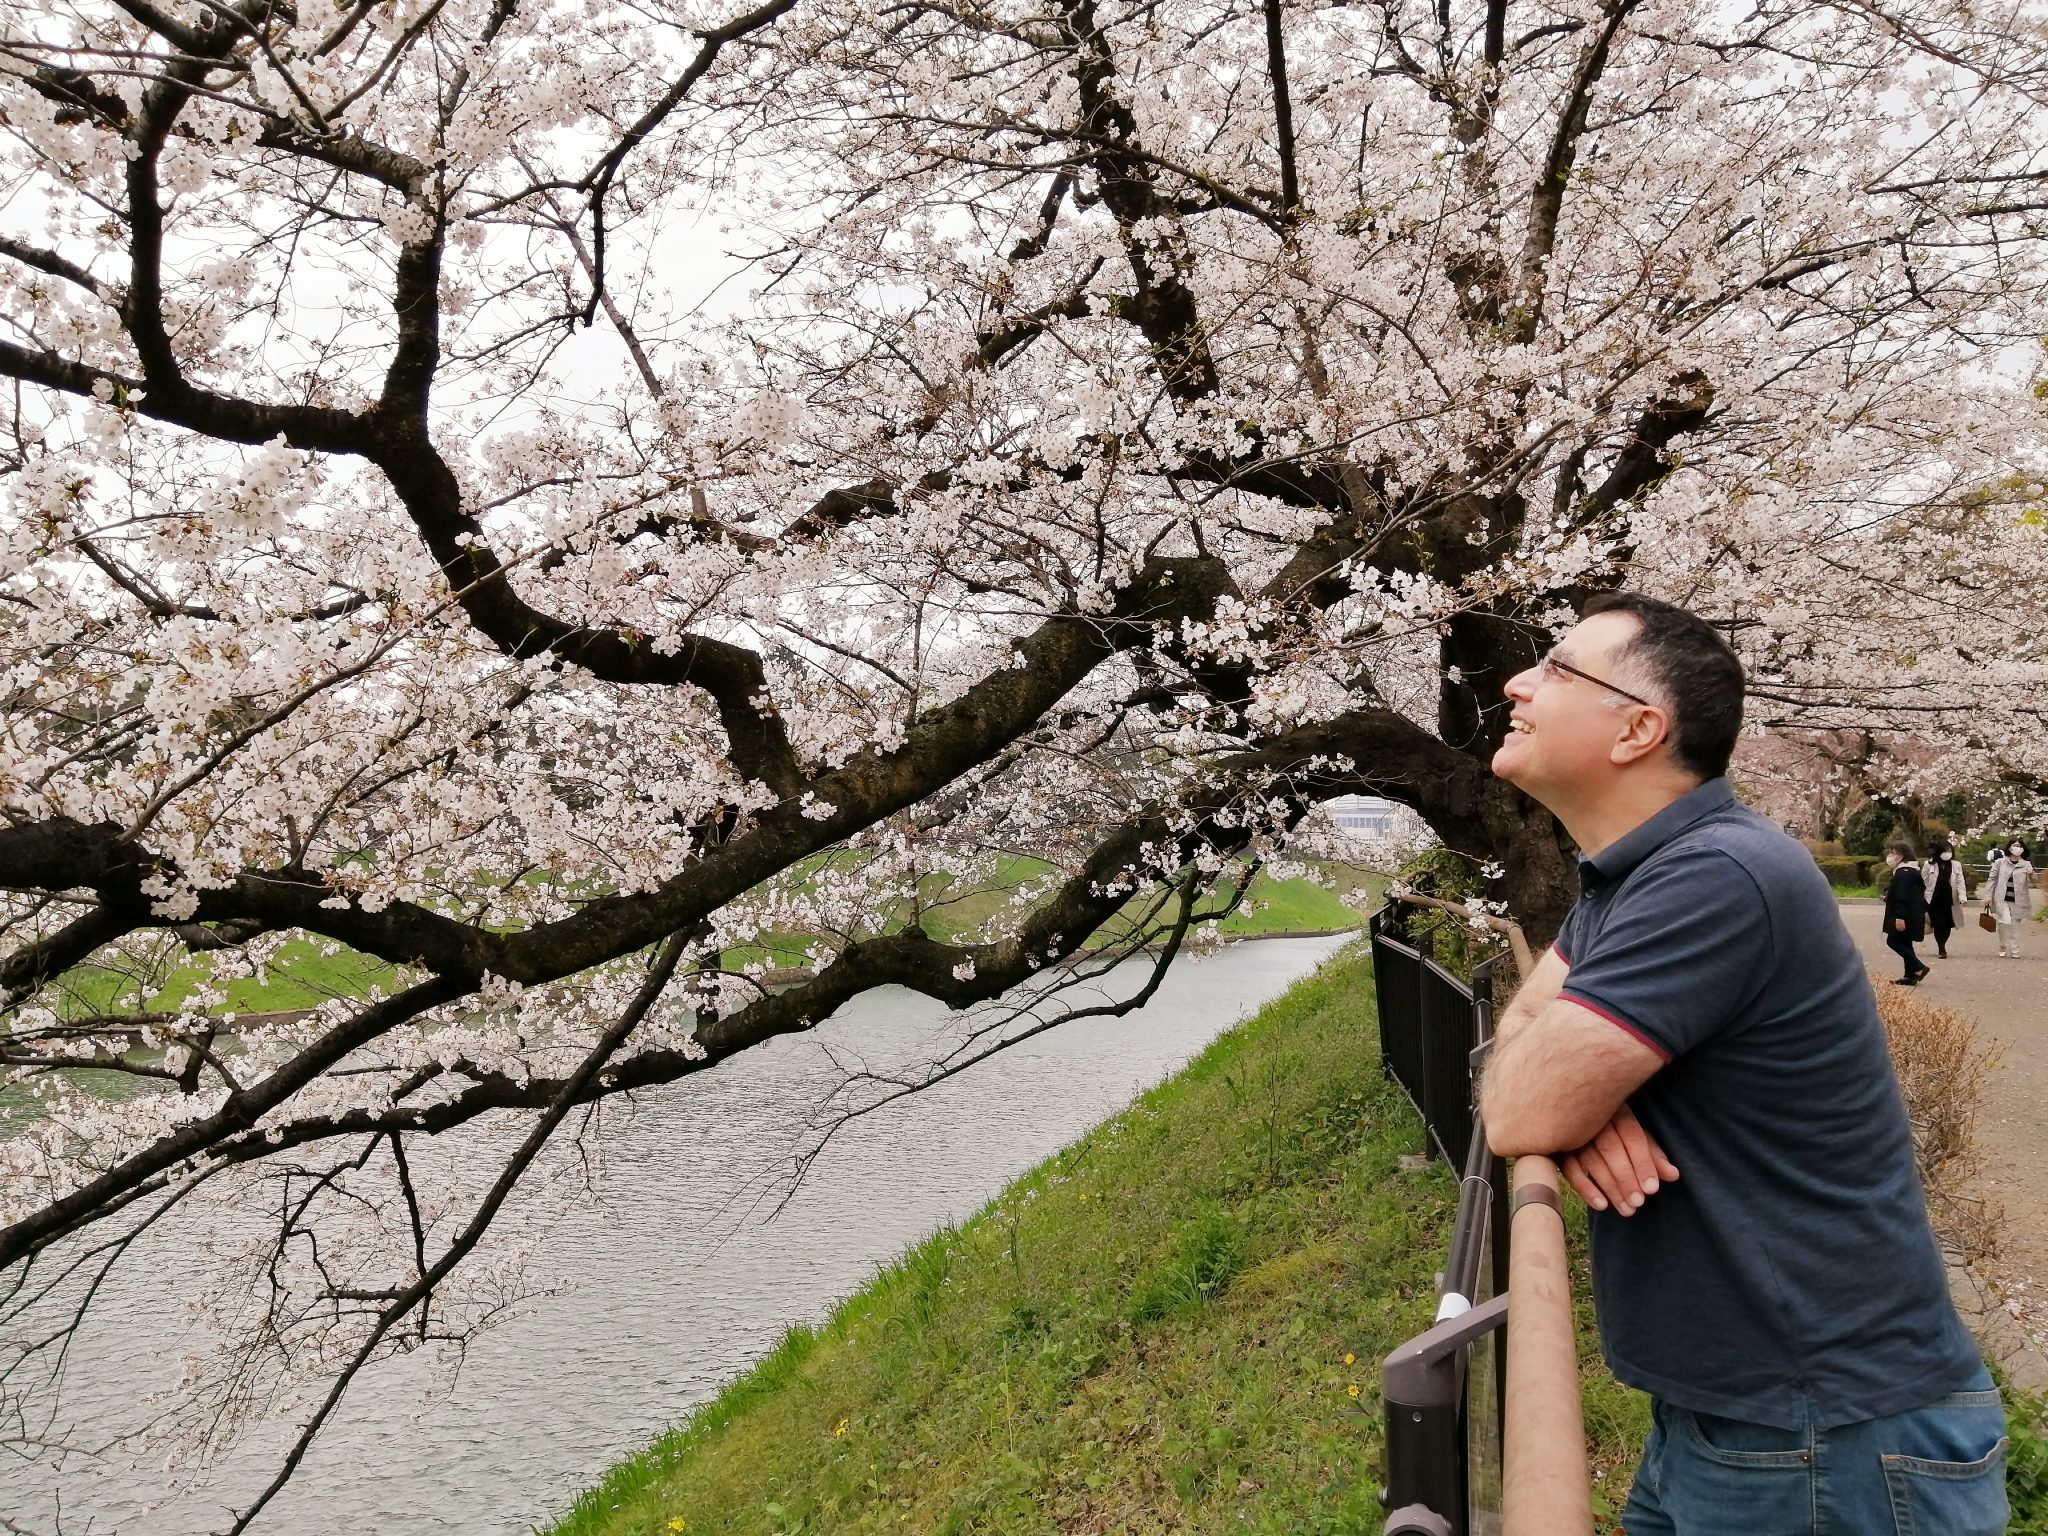 Mac, Founder and Lead Guide of Maction Planet Bespoke Travel, under the sakura cherry blossoms